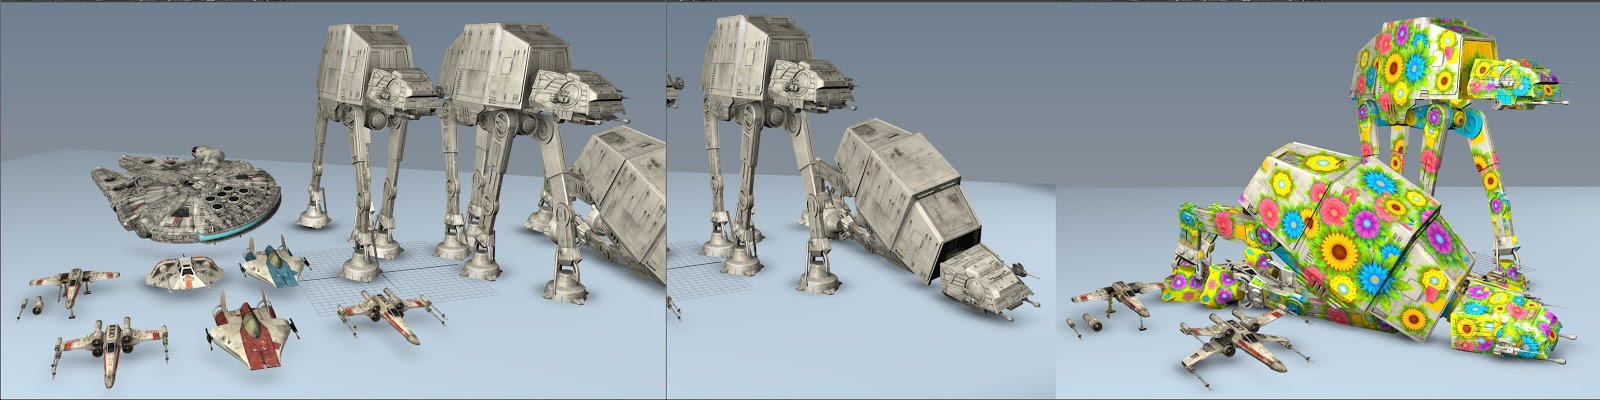 Star Wars Ultimate Vehicles - X-wing, Snowspeeder, A-wing, AT-AT, Millennium Falcon - 3D Models real-time view in Maya